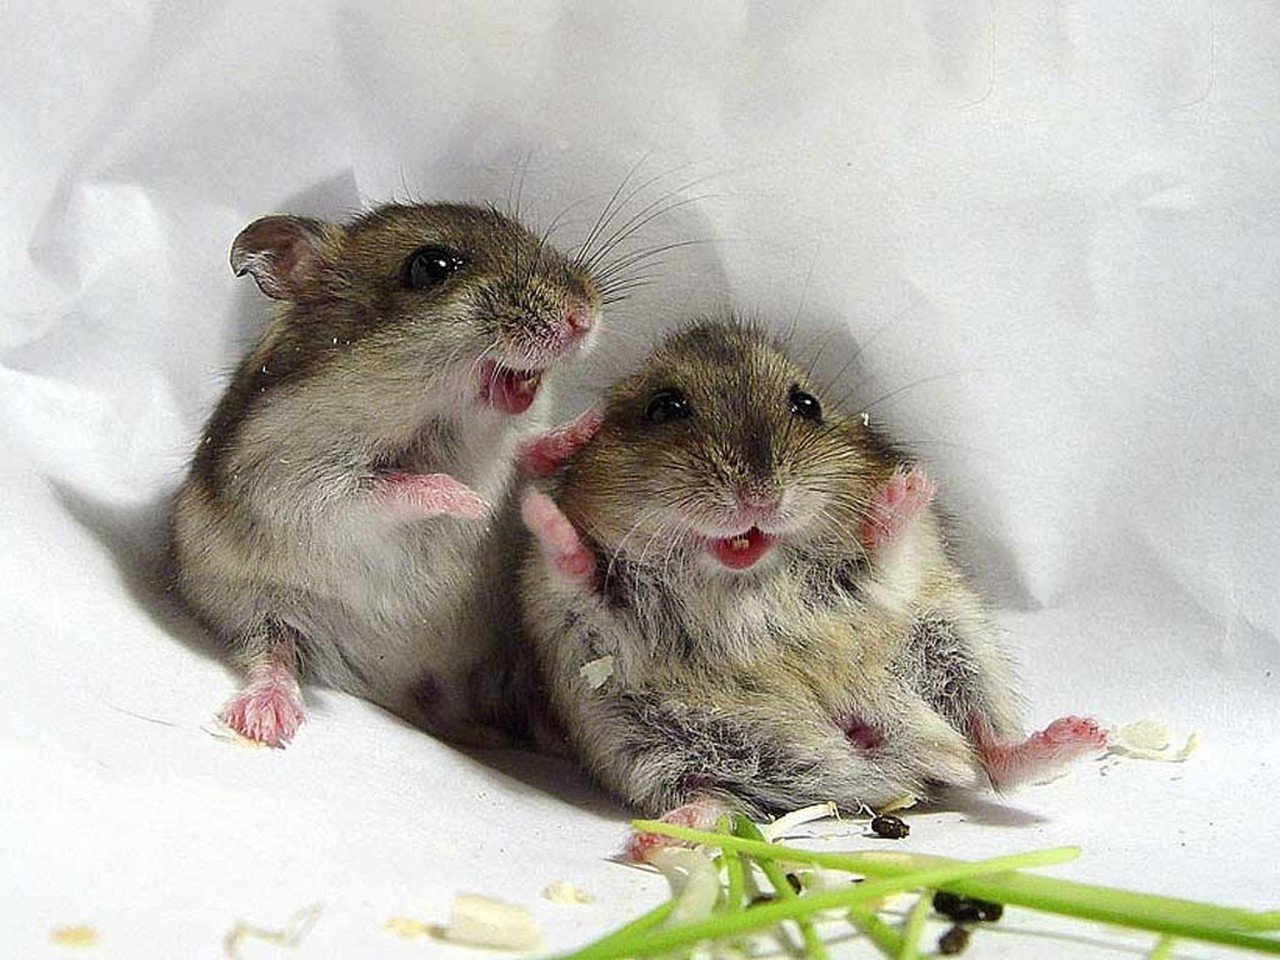 Free Download Mouse Wallpaper ID132509 Hd 1280x960 For Desktop